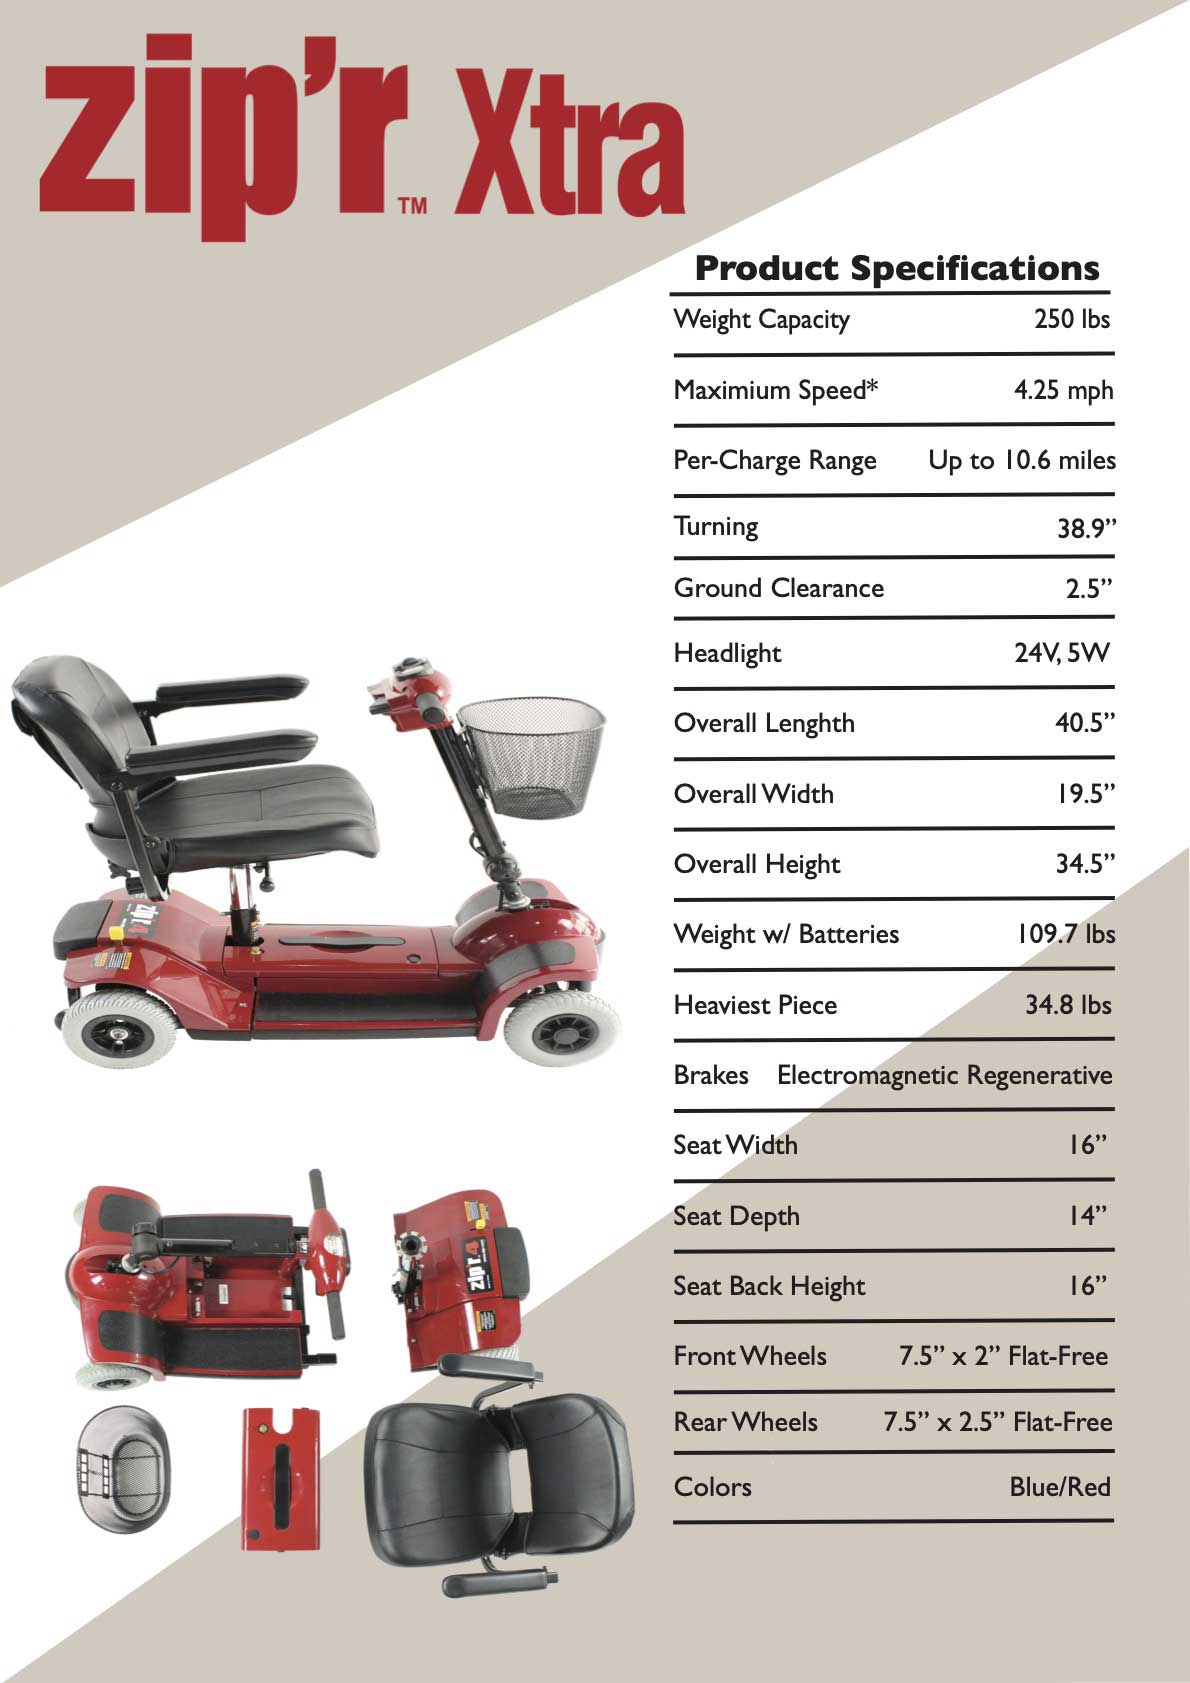 Zipr 4 Xtra Mobility Scooter Product Specifications